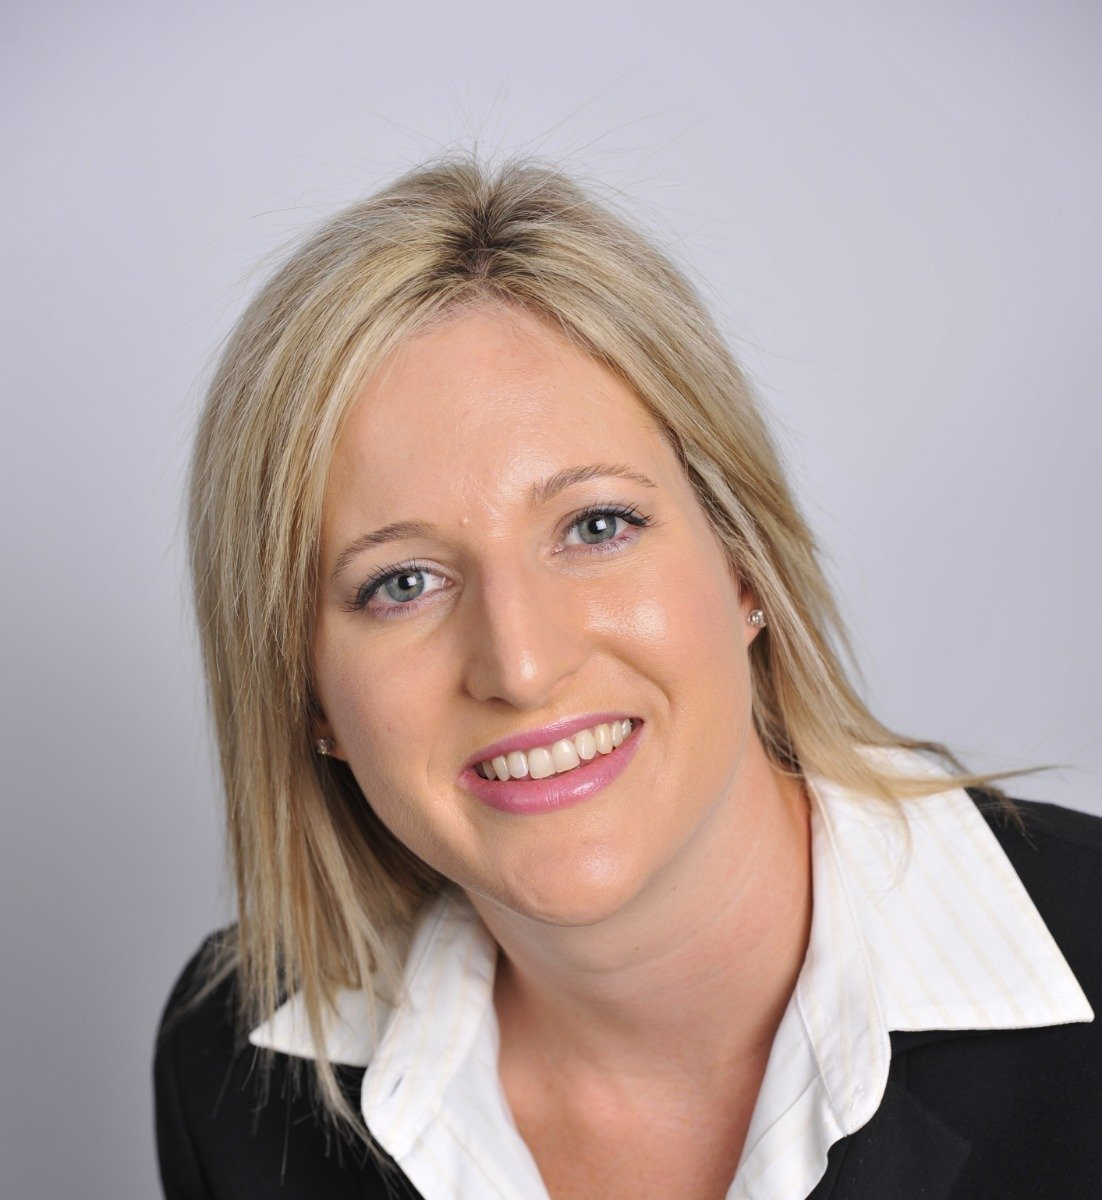 Unlocking the potential for women-headed businesses - meet Simone Cooper, Head of Business Clients at Standard Bank South Africa